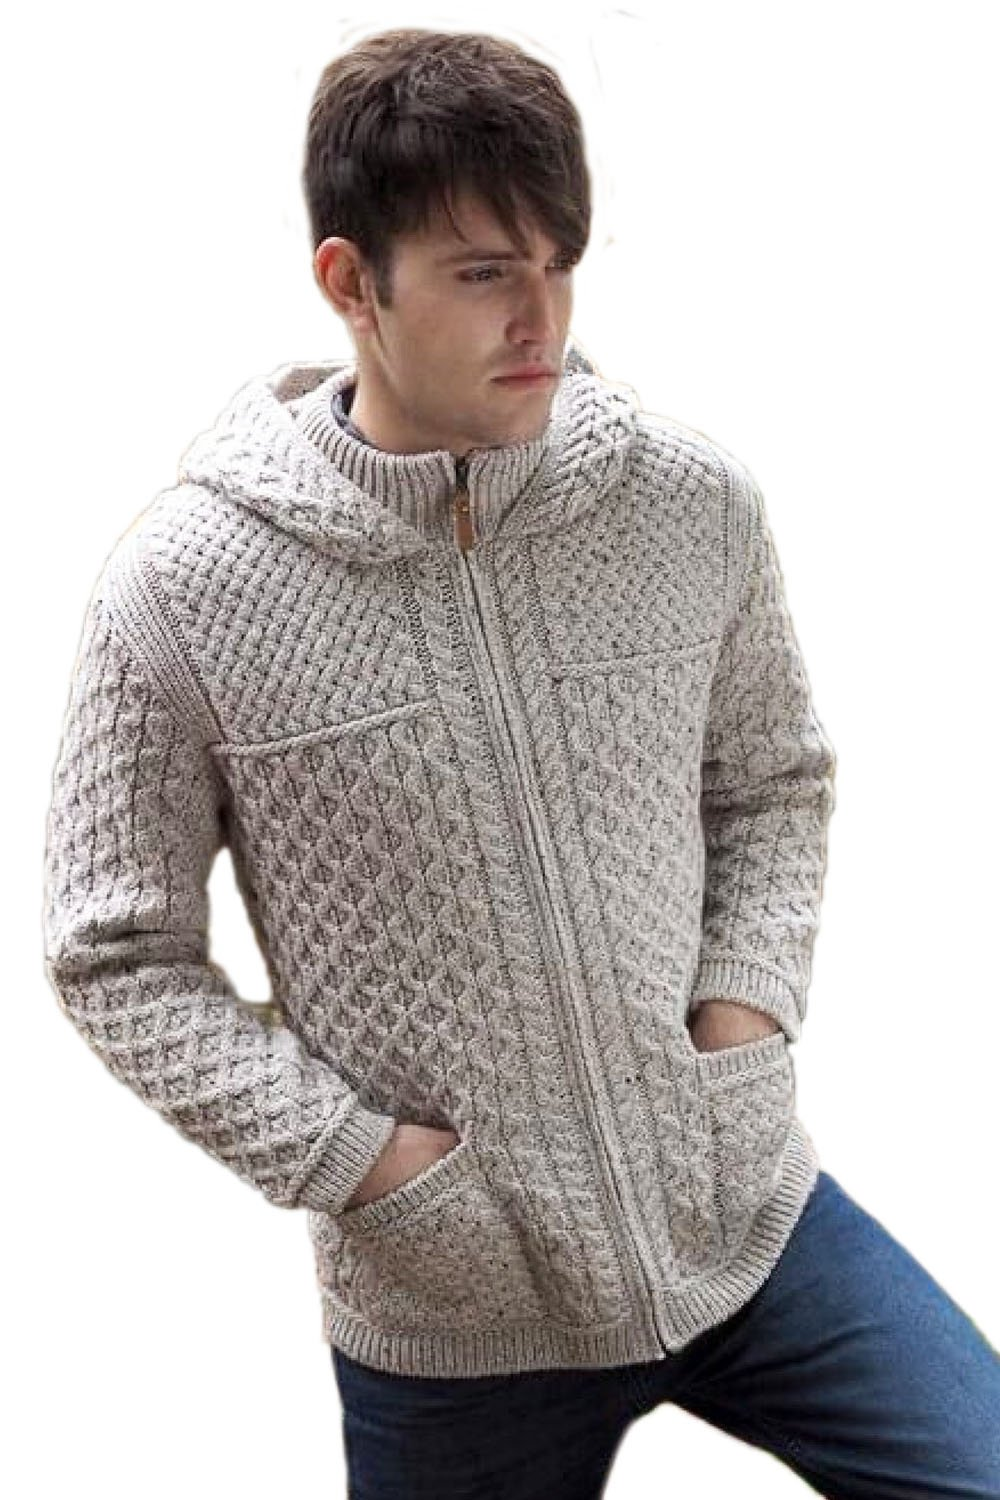 West End Knitwear Merino Wool Hooded Zip-Up Irish Sweater Coat (Medium, Oat)